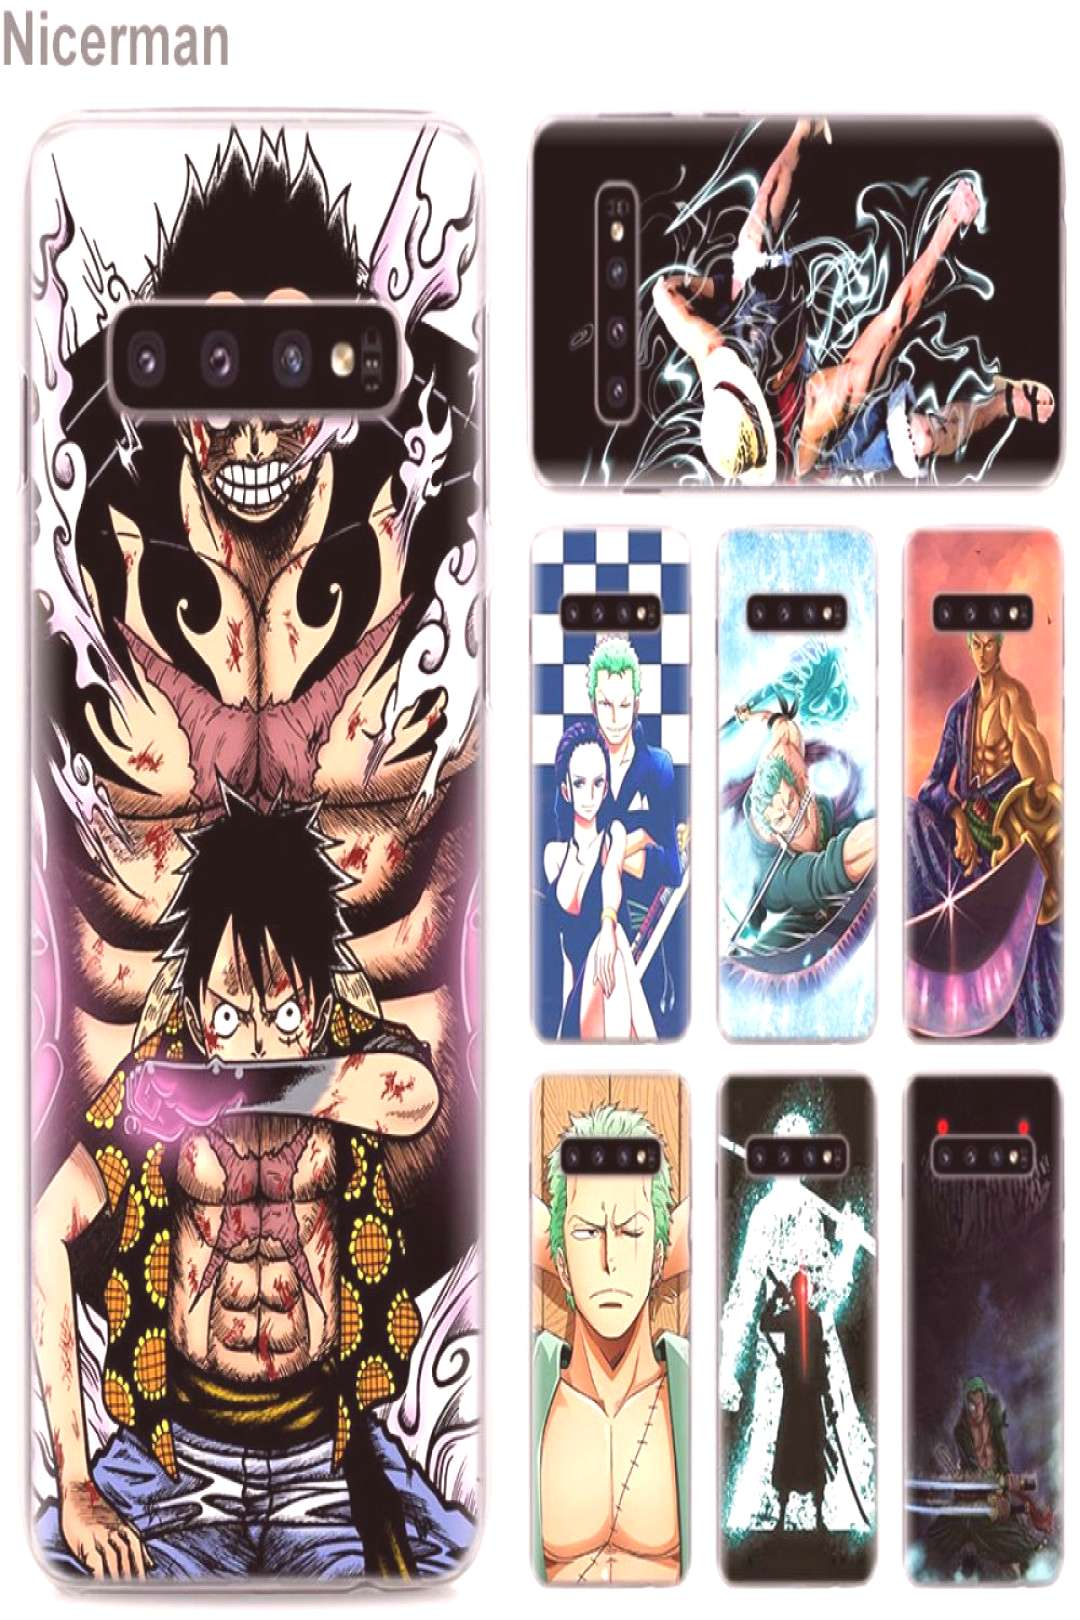 One Piece zoro Luffy Cover Cases for Samsung Galaxy Models for only $9.99 & FREE Shipping Repin to